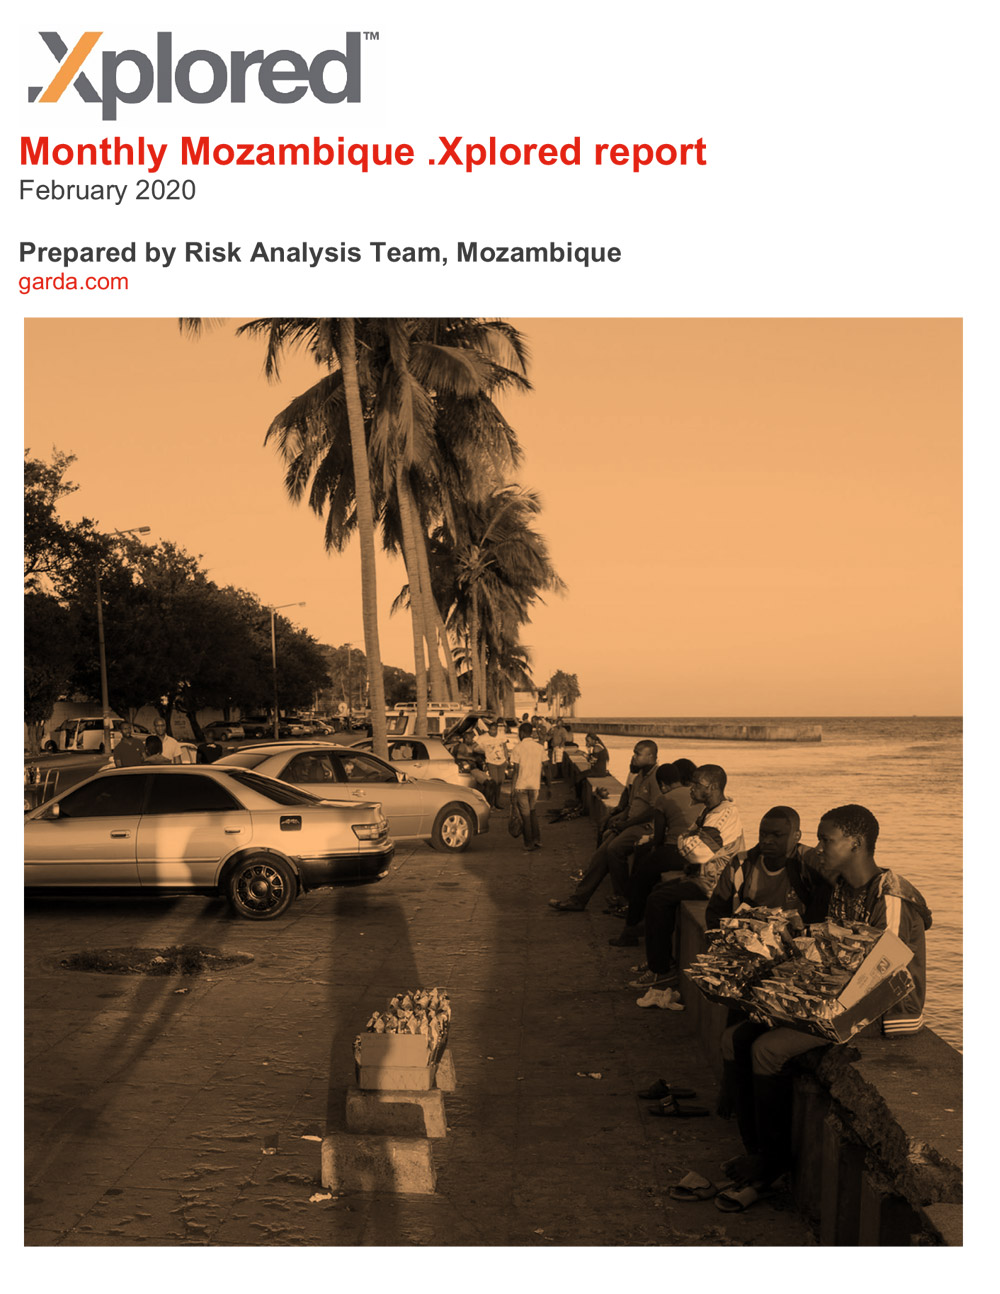 GardaWorld Monthly Mozambique .Xplored February 2020 risk report